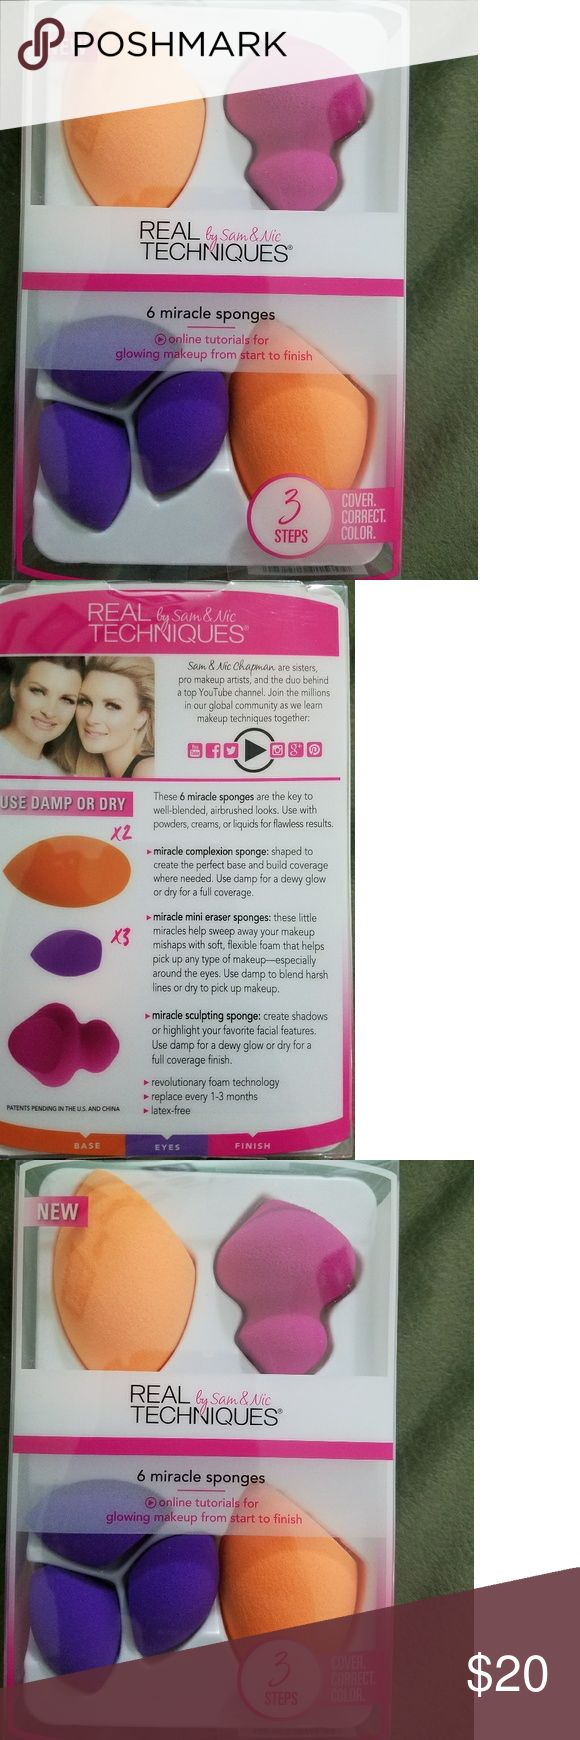 6 miracle makeup sponges Real techniques by Sam & Nic 6 miracle makeup sponges kit. Brand New never opened or used. Different colors and sizes for different makeup applications. Real Techniques Makeup Brushes & Tools